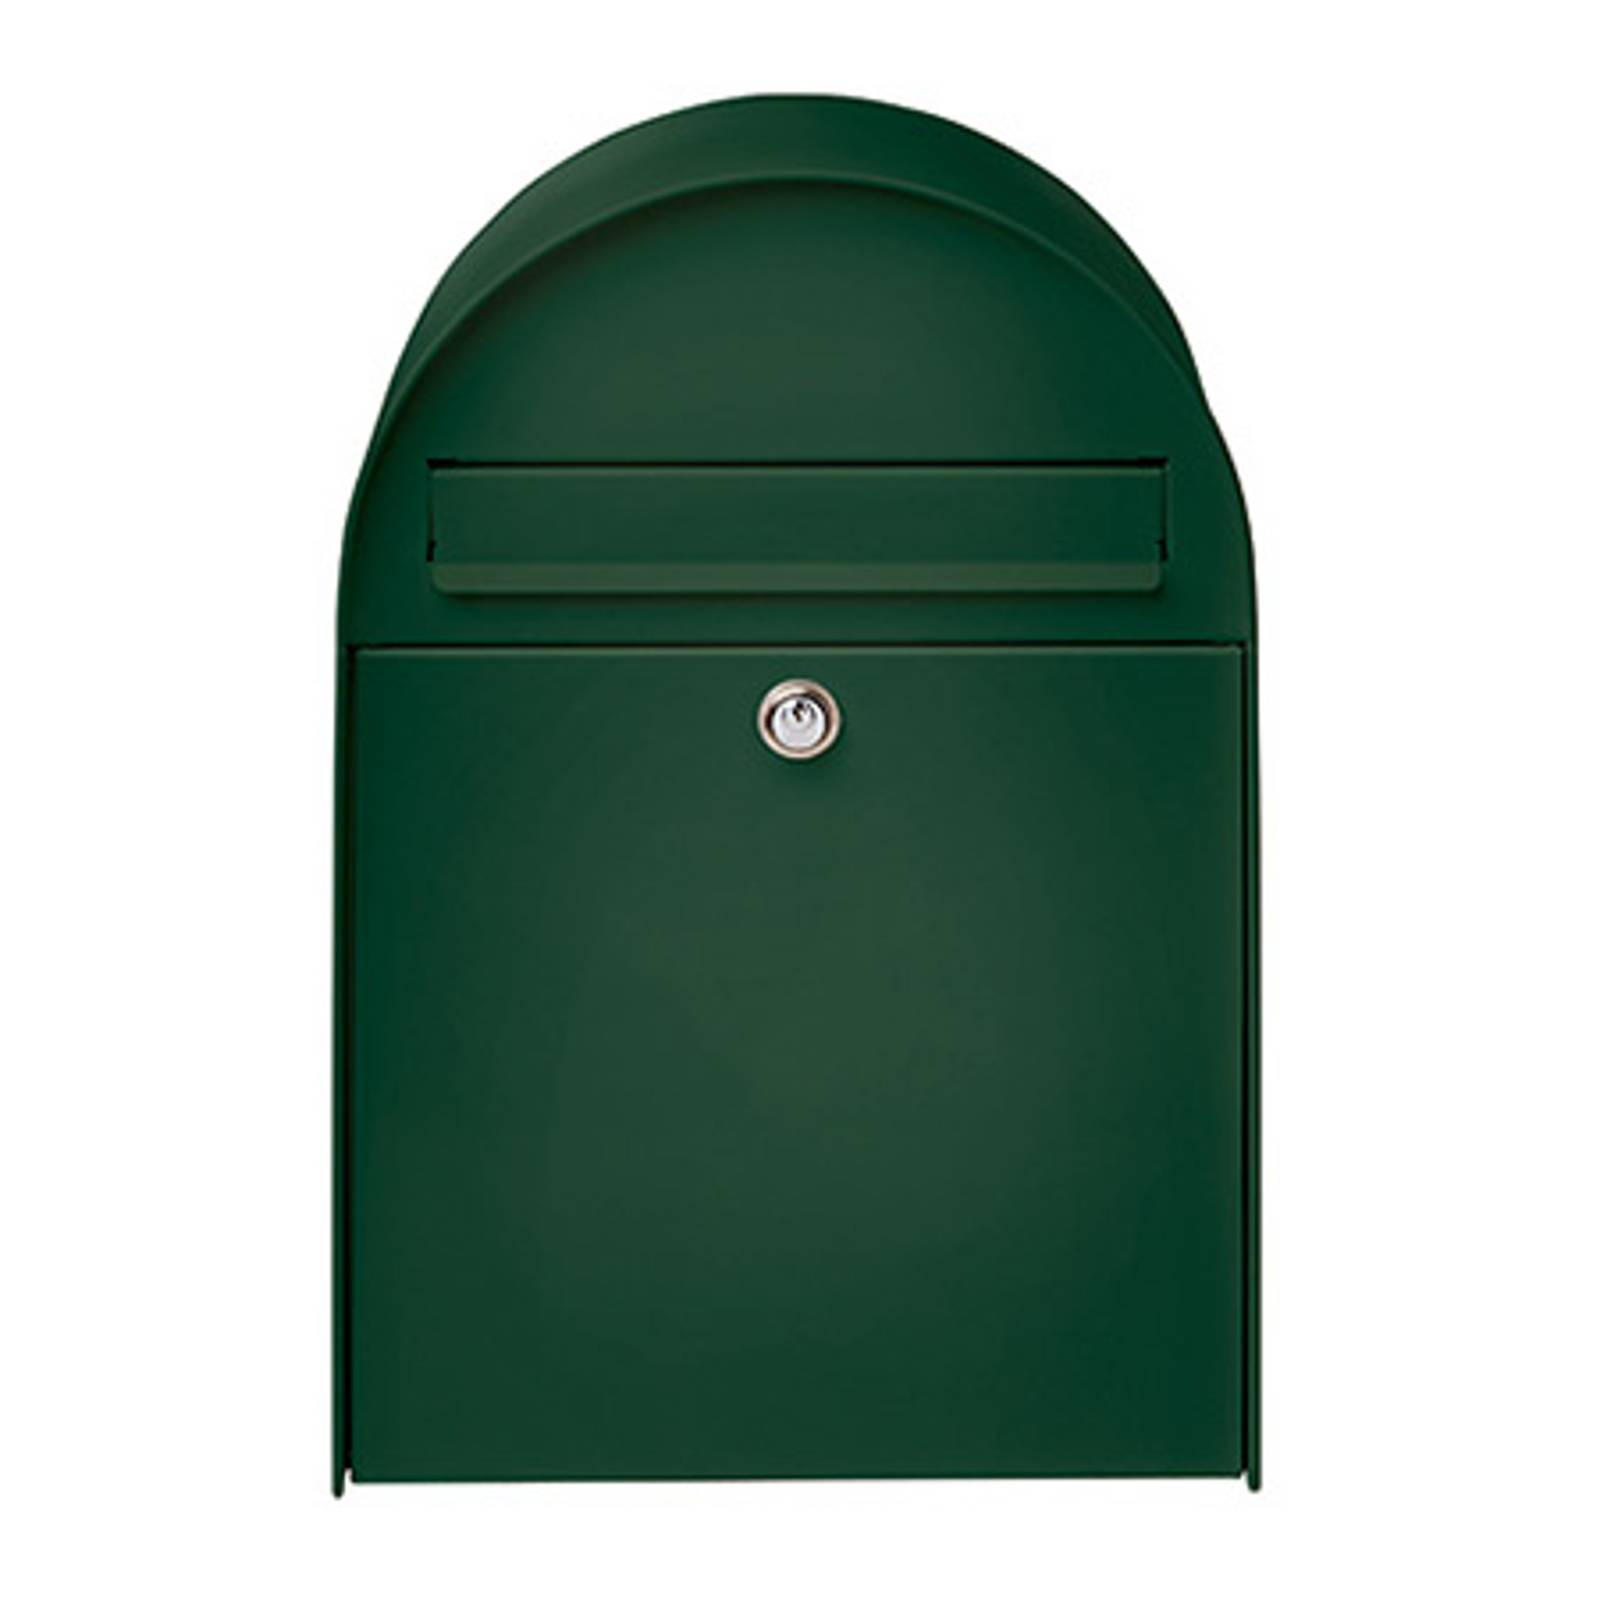 Spacious letter box Nordic 680 in Green from Burgwächter